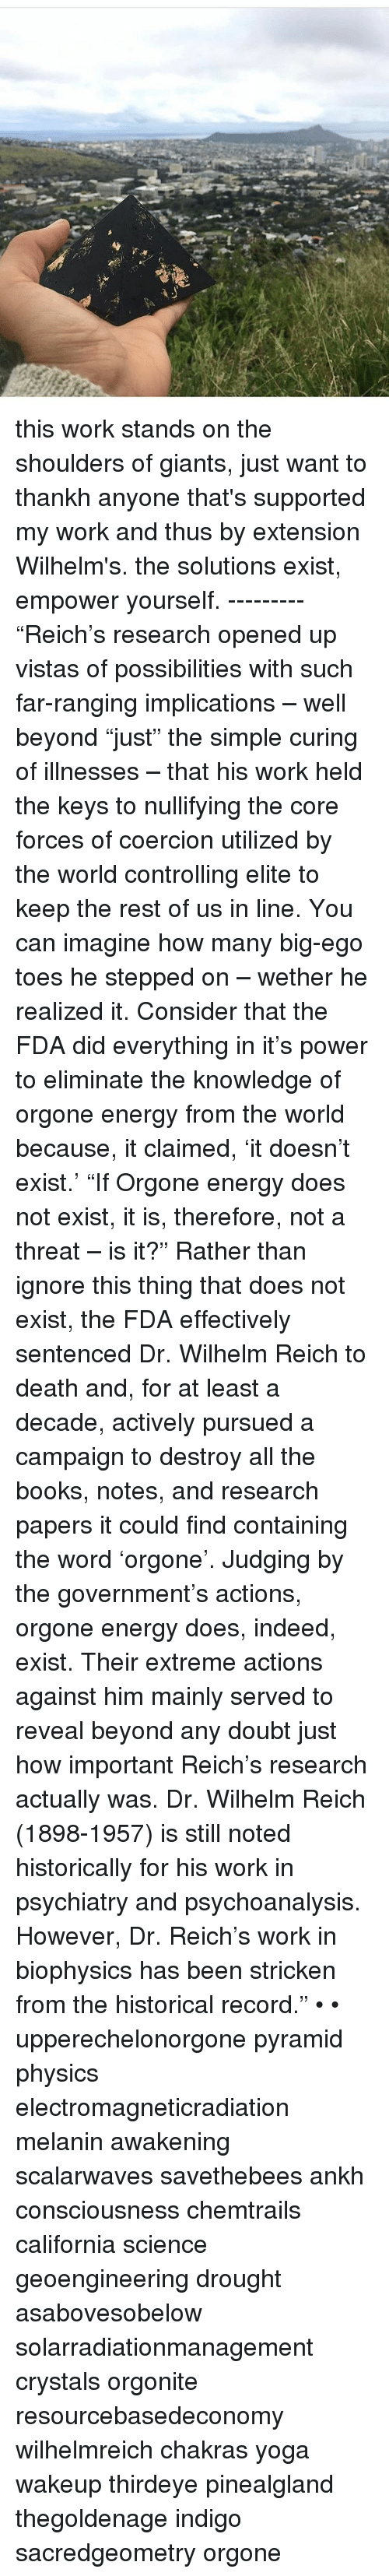 wilhelm reich research papers